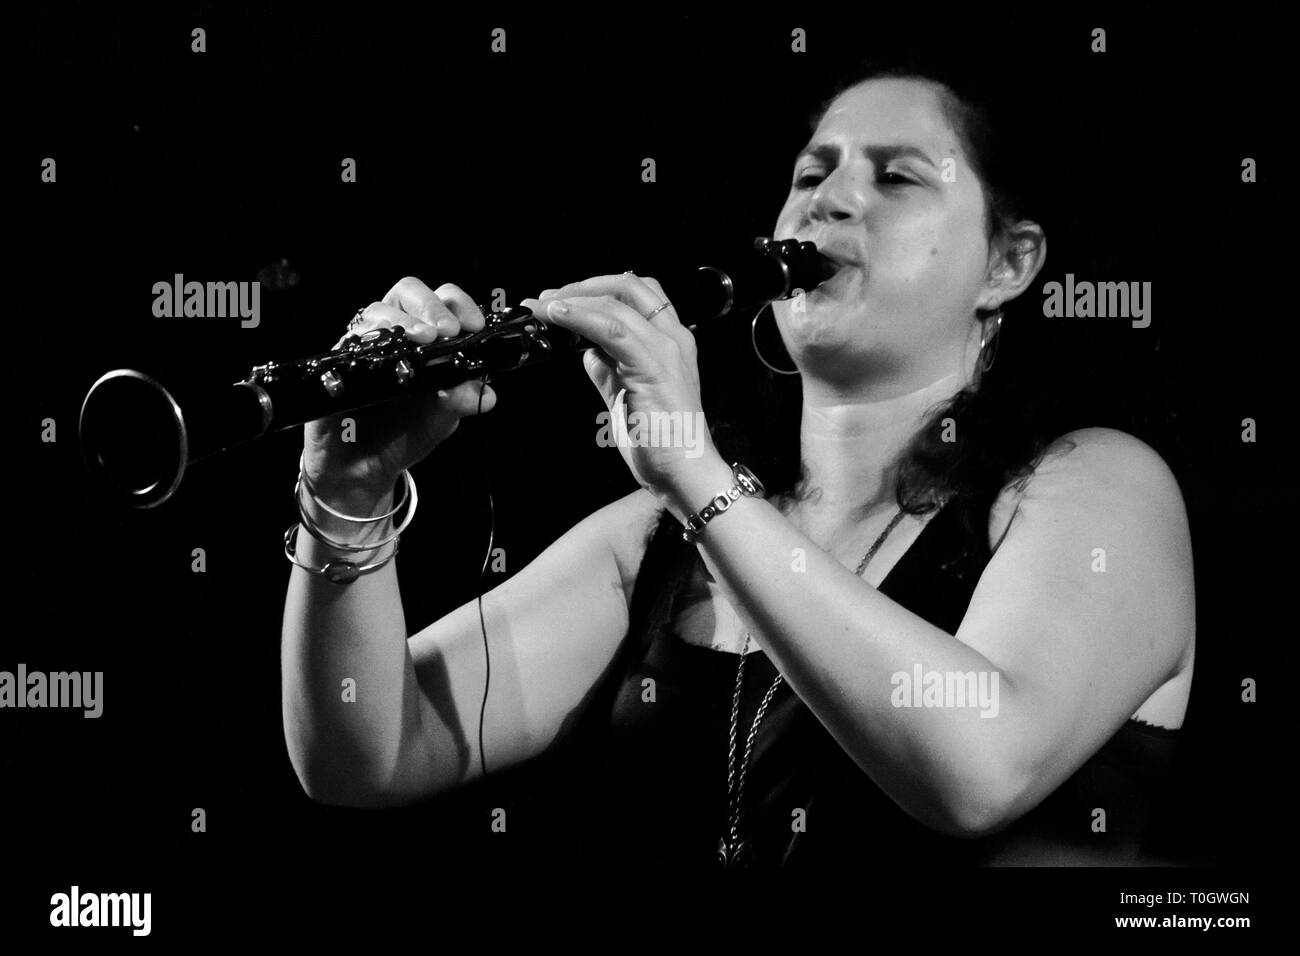 PERUGIA, ITALY - JULY 15, 2011 - Anat Cohen playing clarinet on main stage at Umbria Jazz Festival - July 15, 2011 in Perugia, Italy - Stock Image